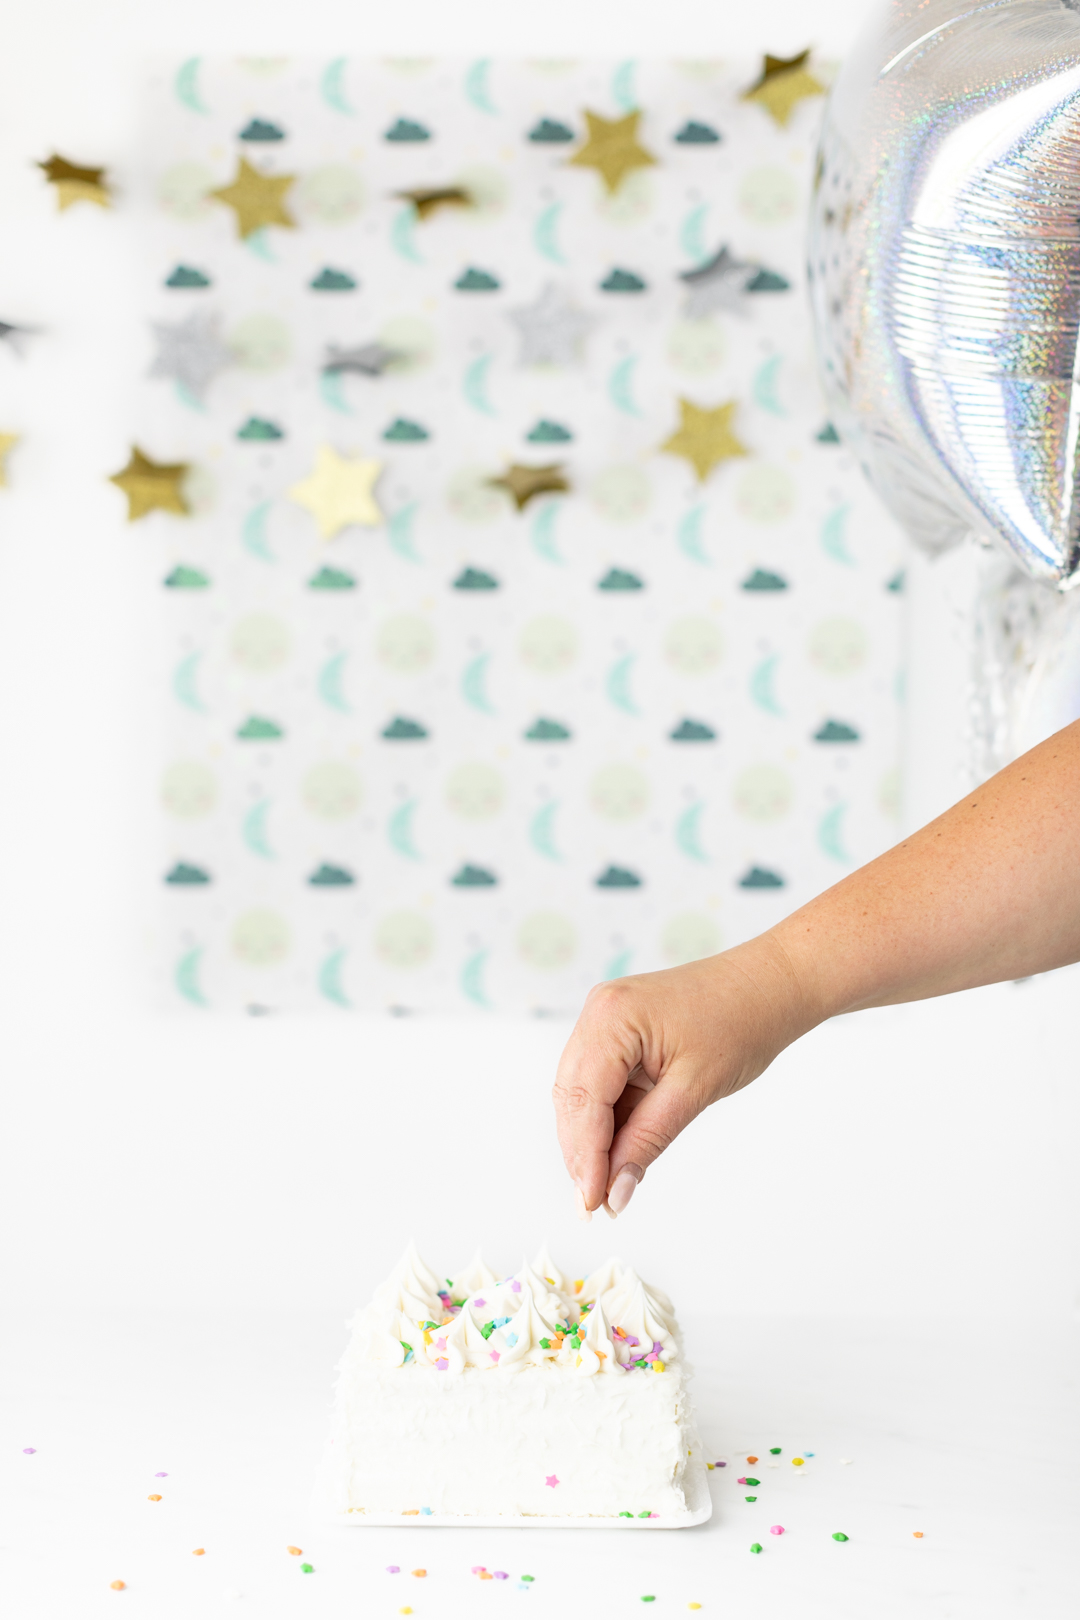 Add star sprinkles to cake